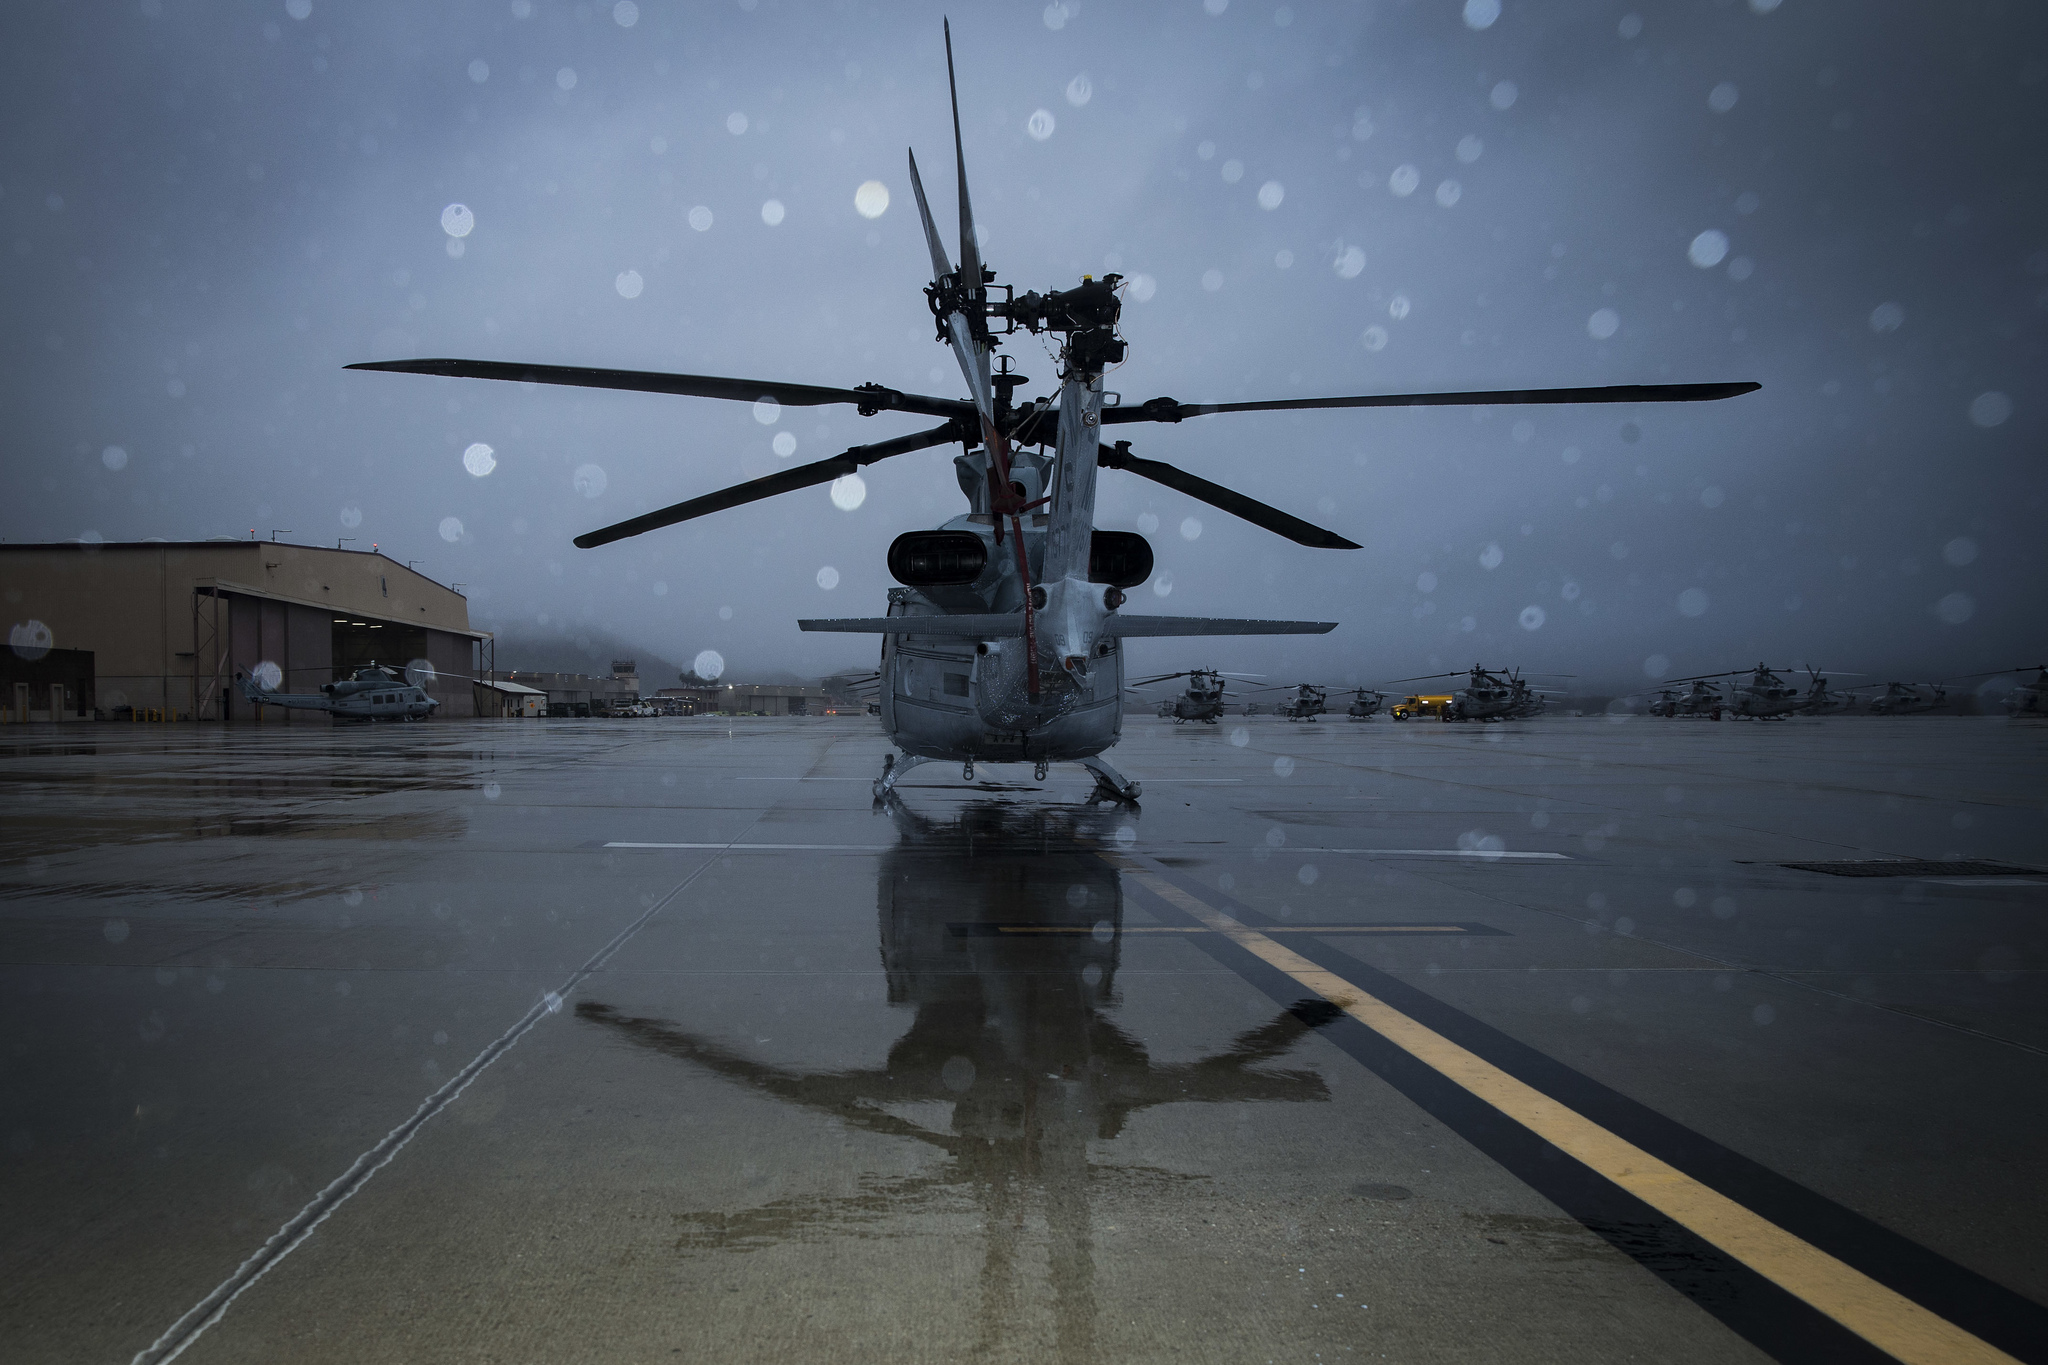 Rain drenches a UH-1Y Venom helicopter on the flight line at Marine Corps Air Station Camp Pendleton, Calif., Jan. 16, 2019. (Lance Cpl. Drake Nickels/Marine Corps)